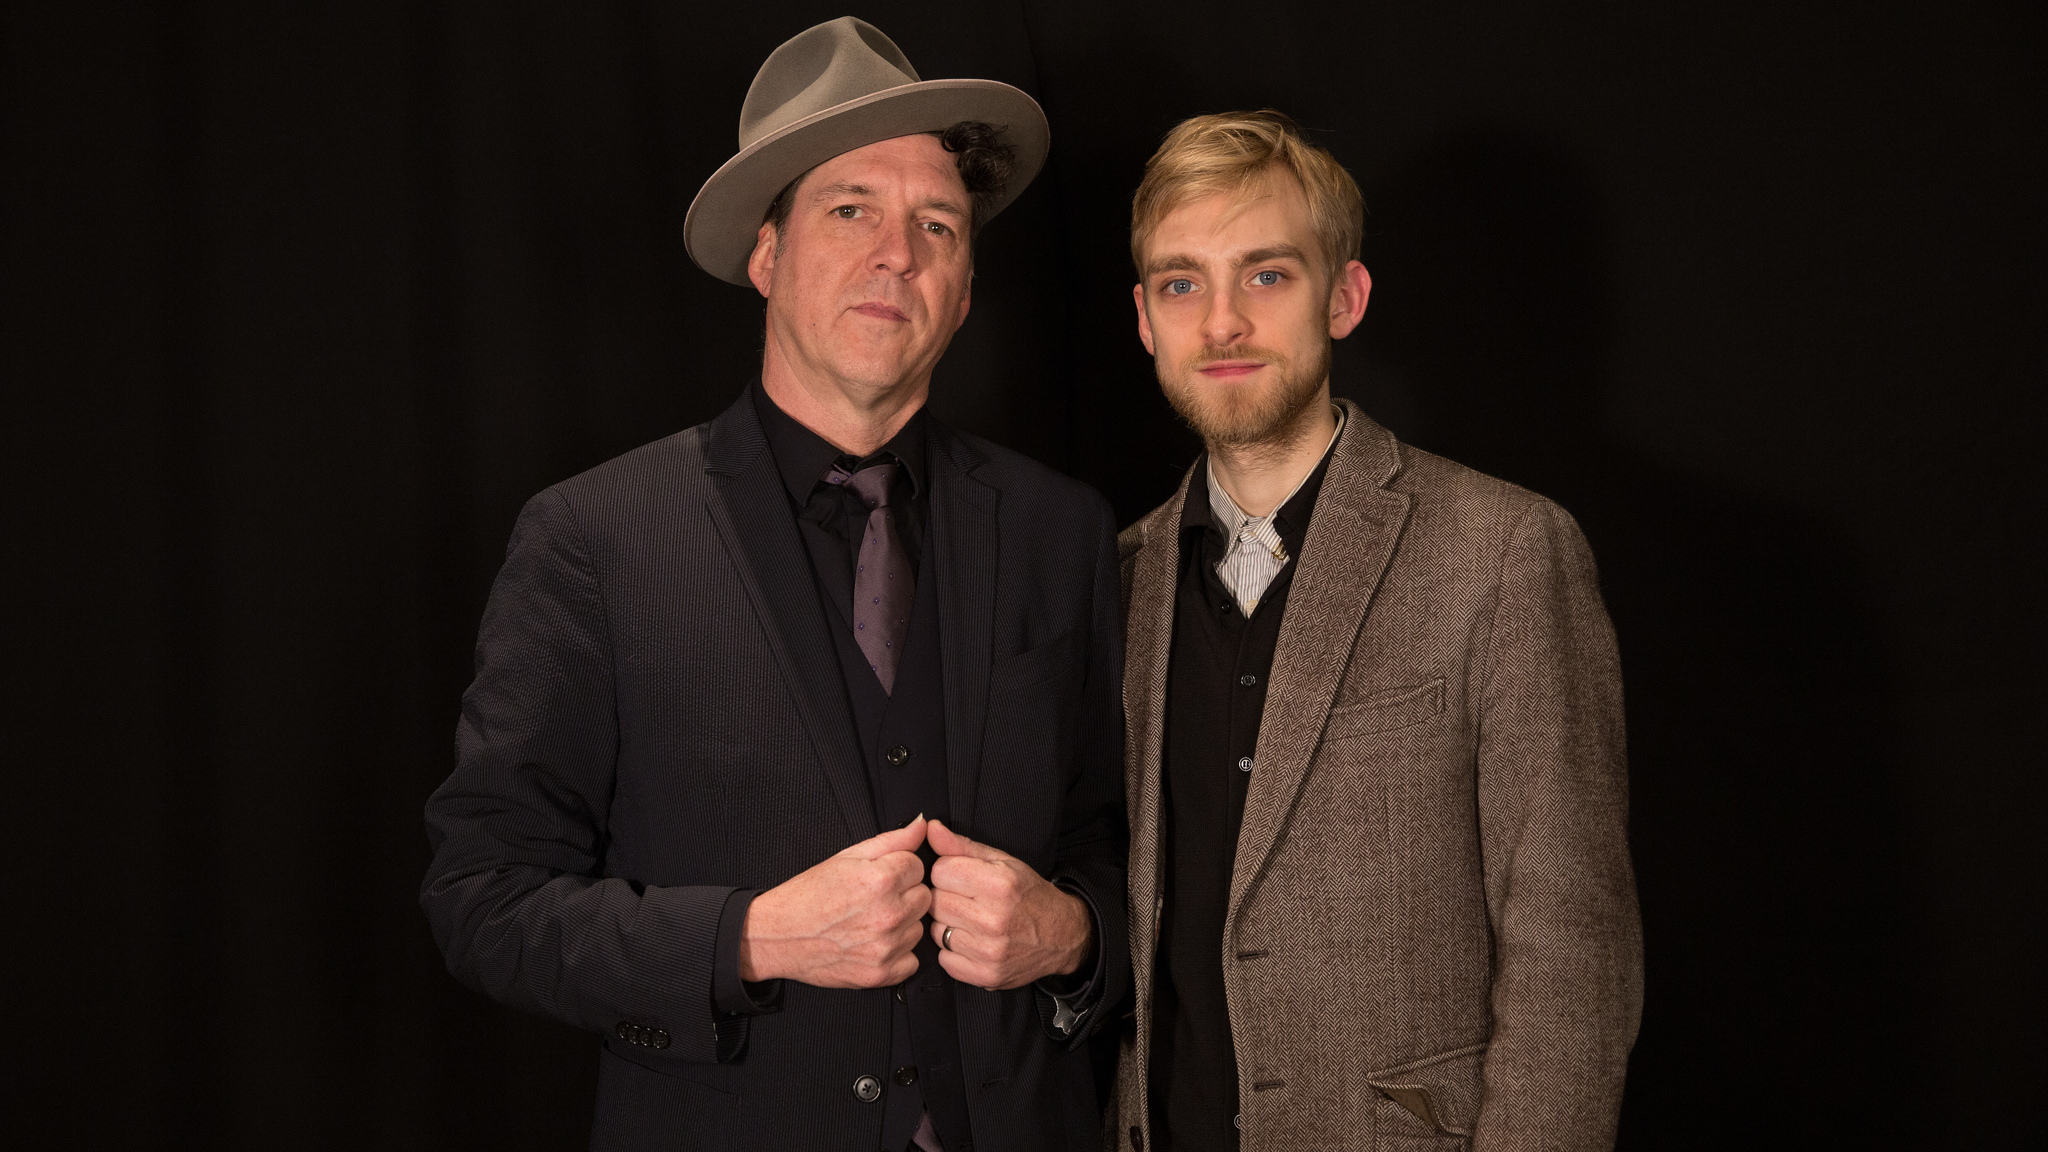 Joe and Levon Henry at WFUV